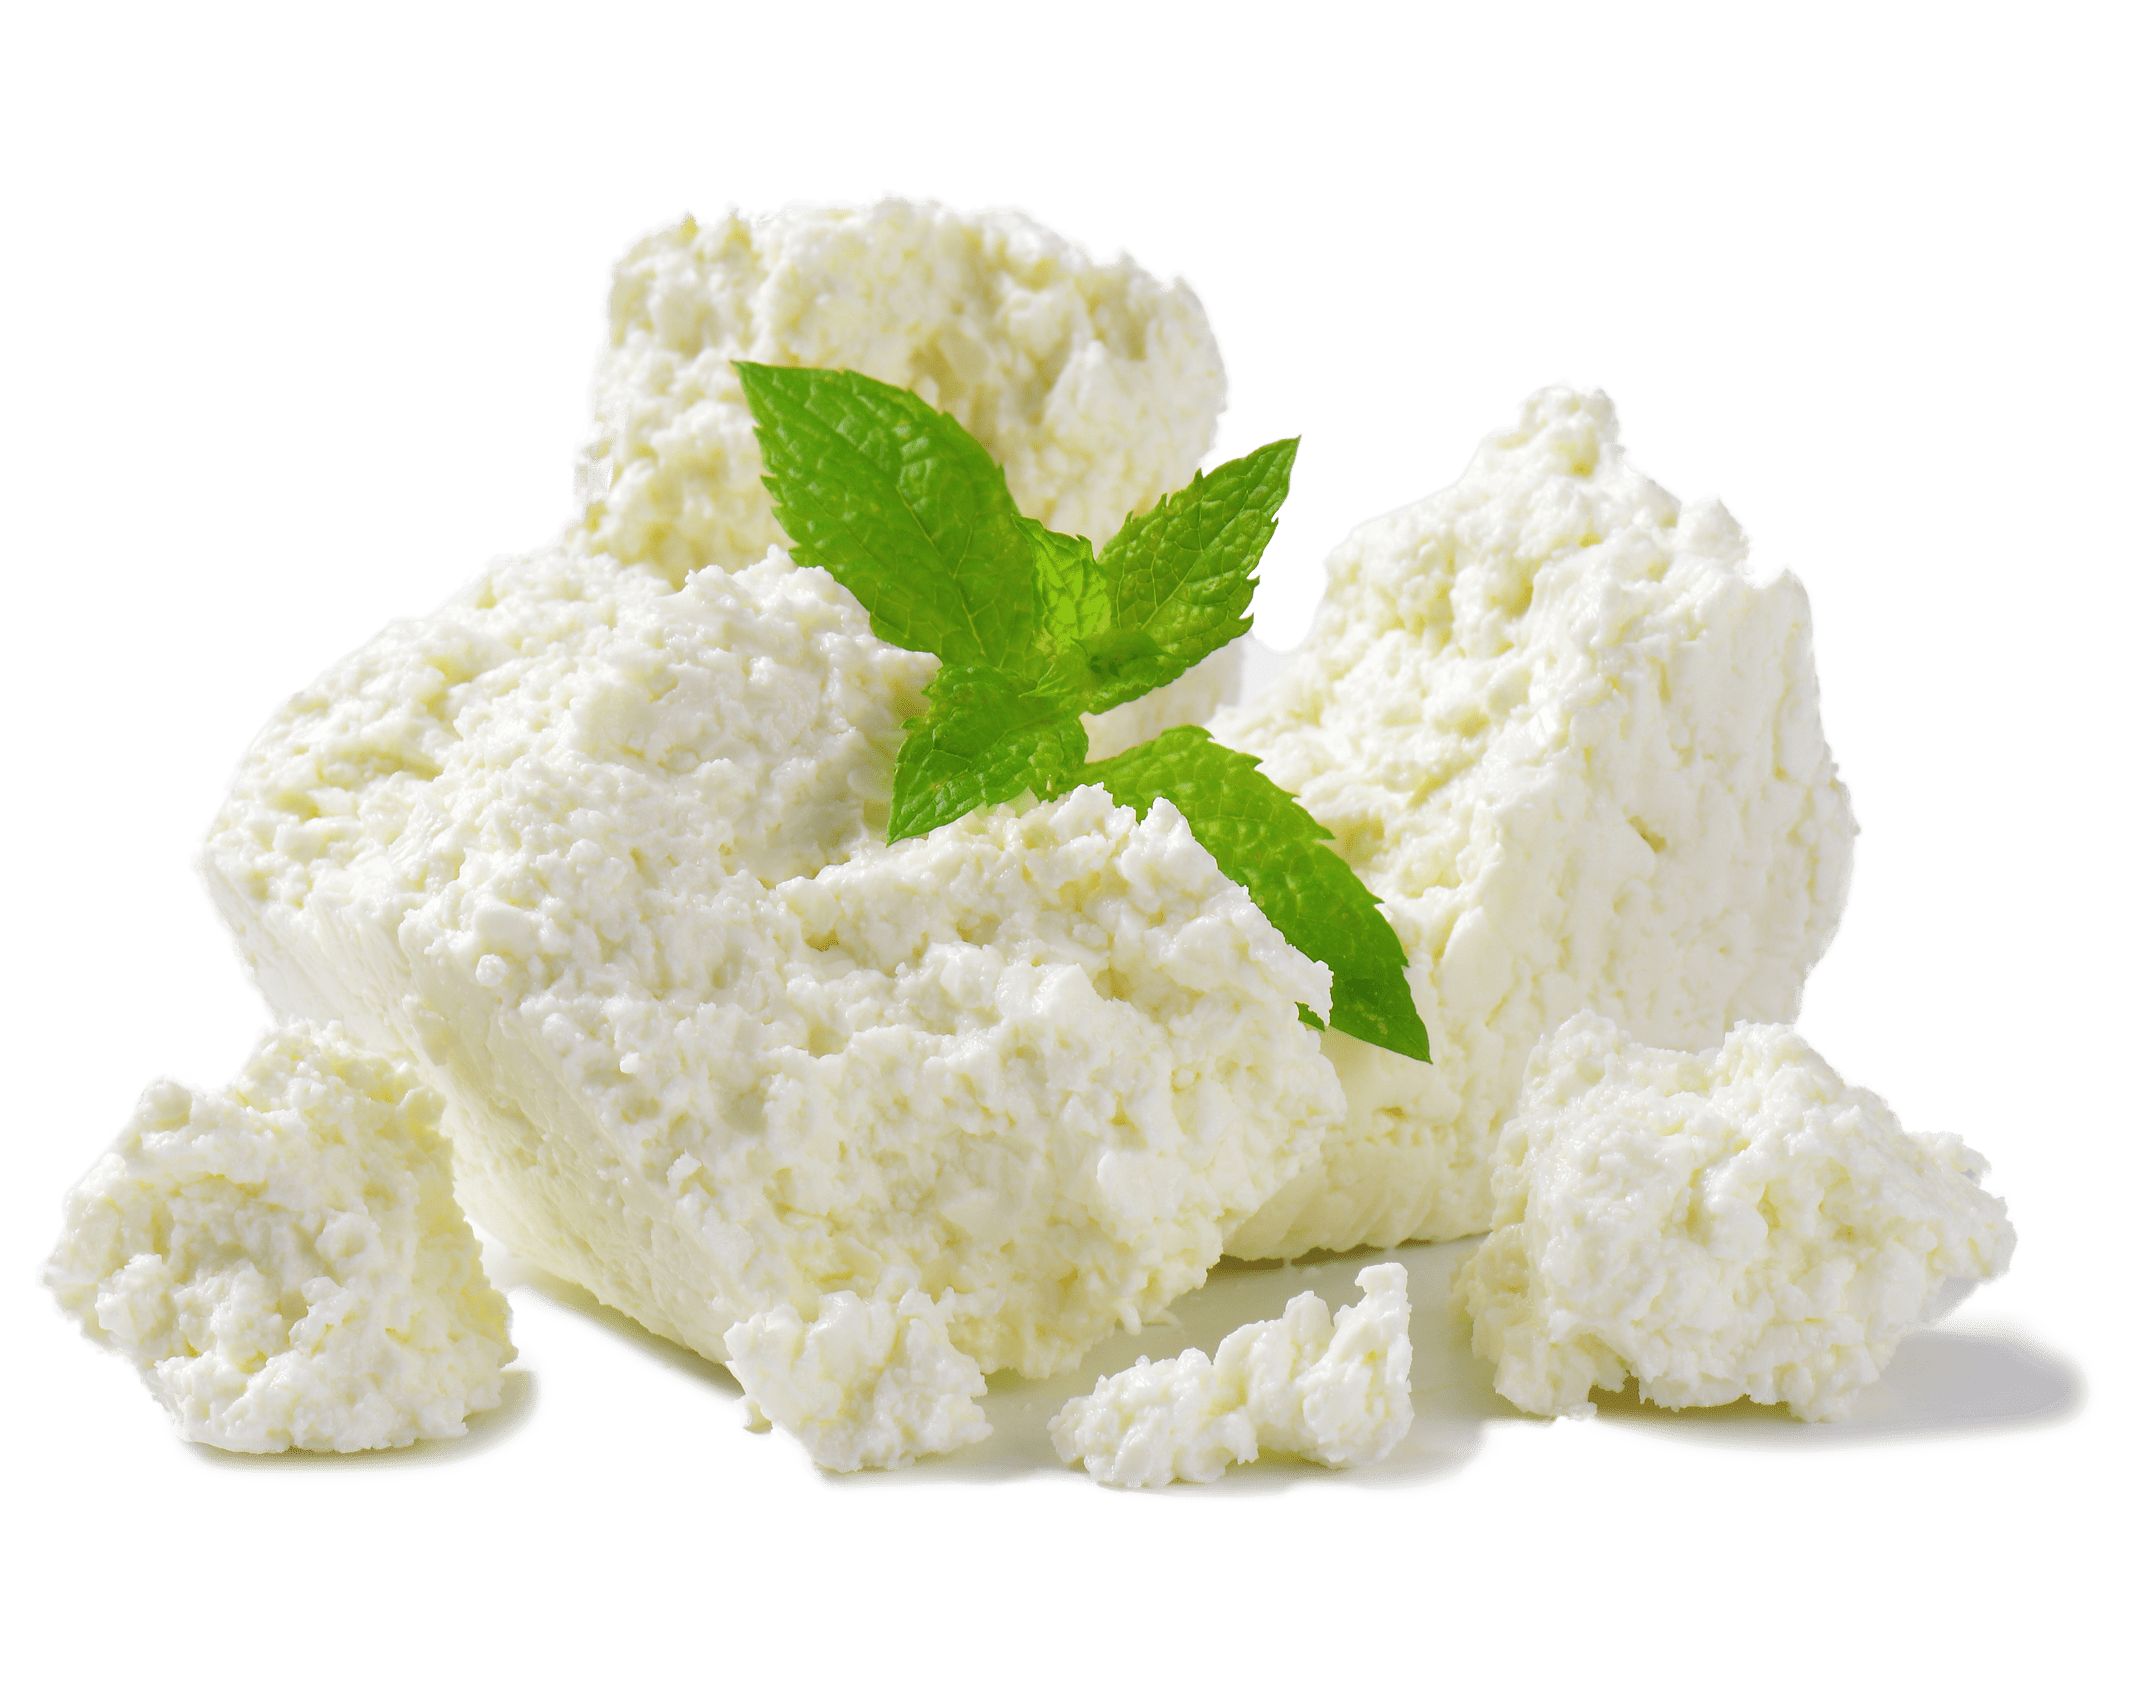 Ricotta cheese with mint leaves